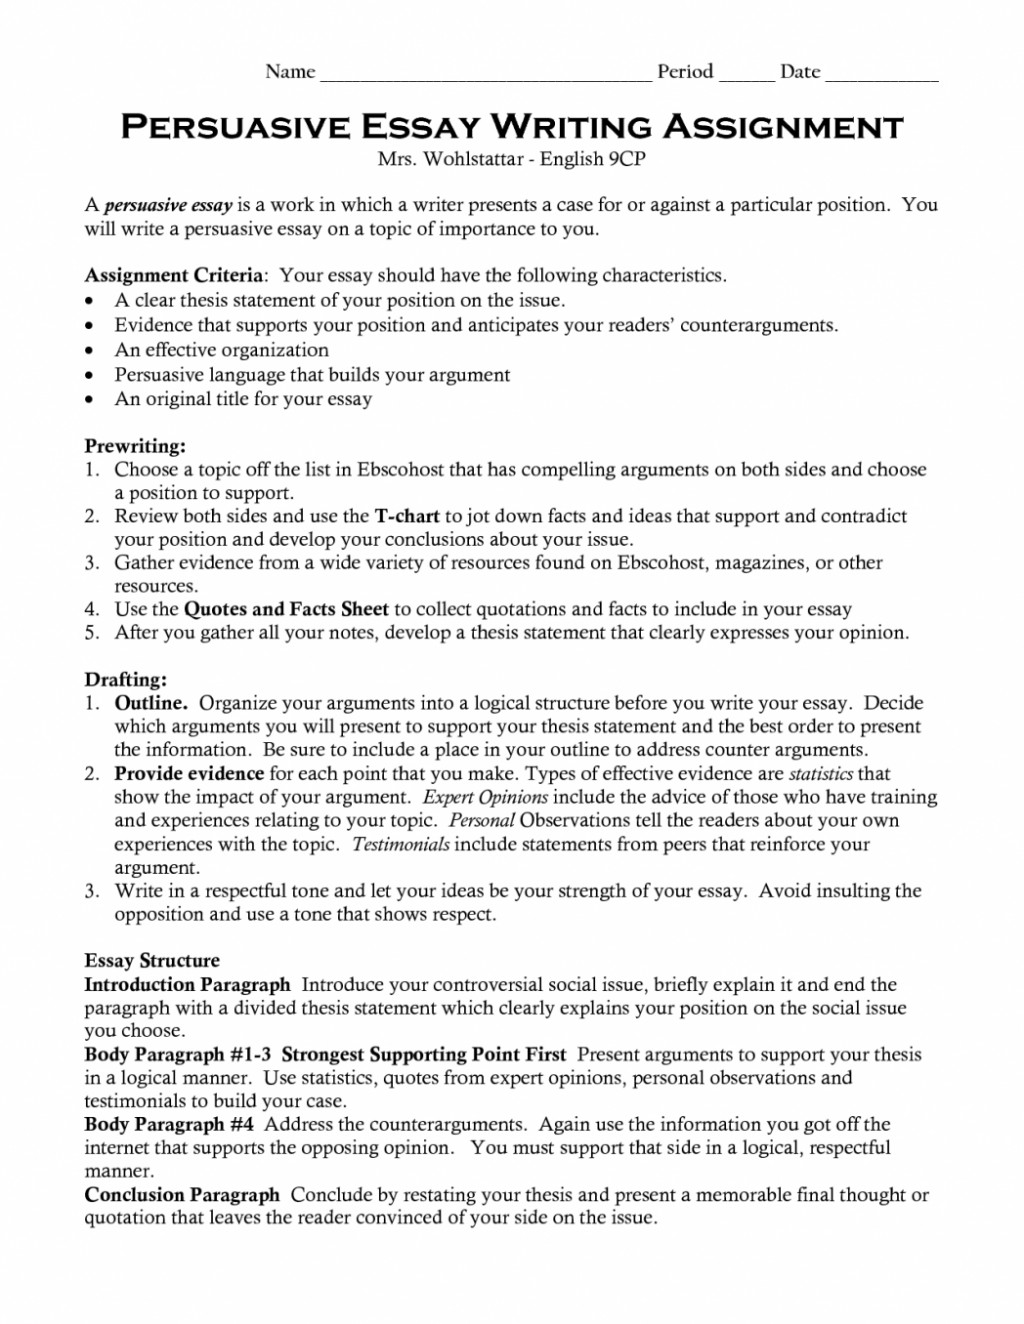 003 Persuasive Essay About Bullying Thesisamples Write Statement On Template V0c Introduction Outline For Brainly Tagalog In School Pdf Body Cyber 1048x1356 Stunning Must Stop Argumentative Conclusion Large